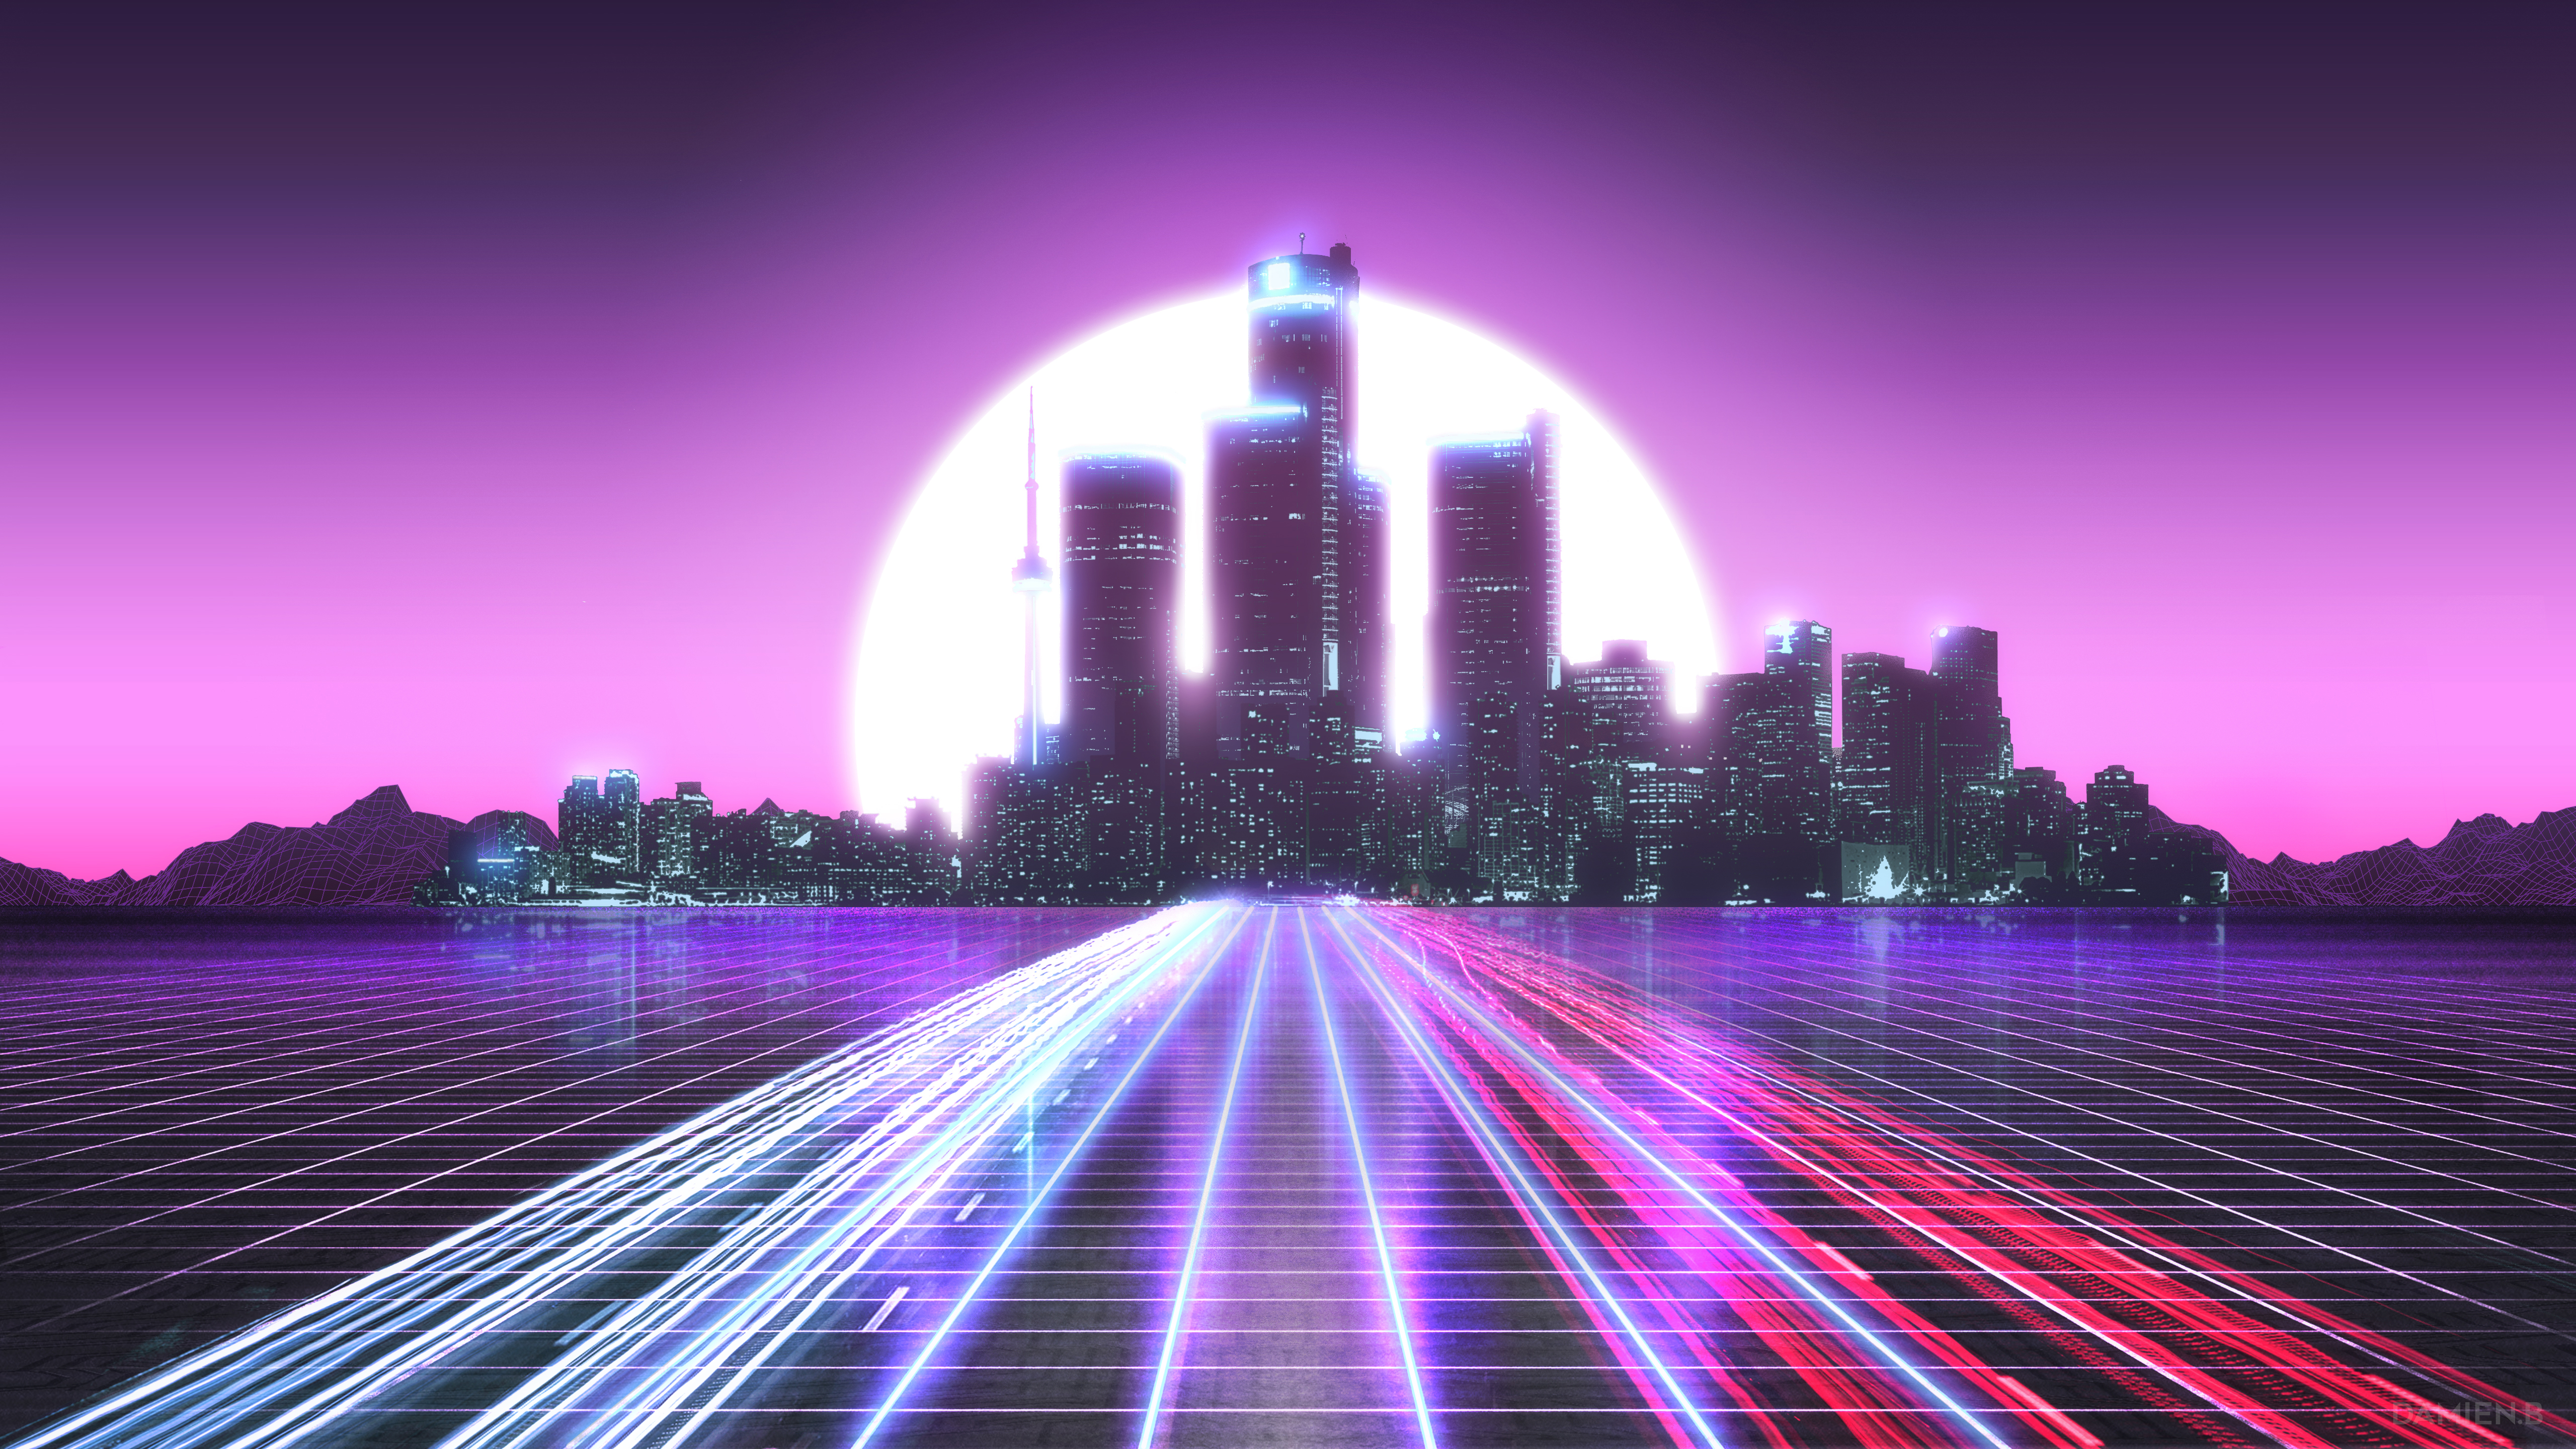 City Lights Long Exposure Synthwave 5k Hd Artist 4k Wallpapers Images Backgrounds Photos And Pictures